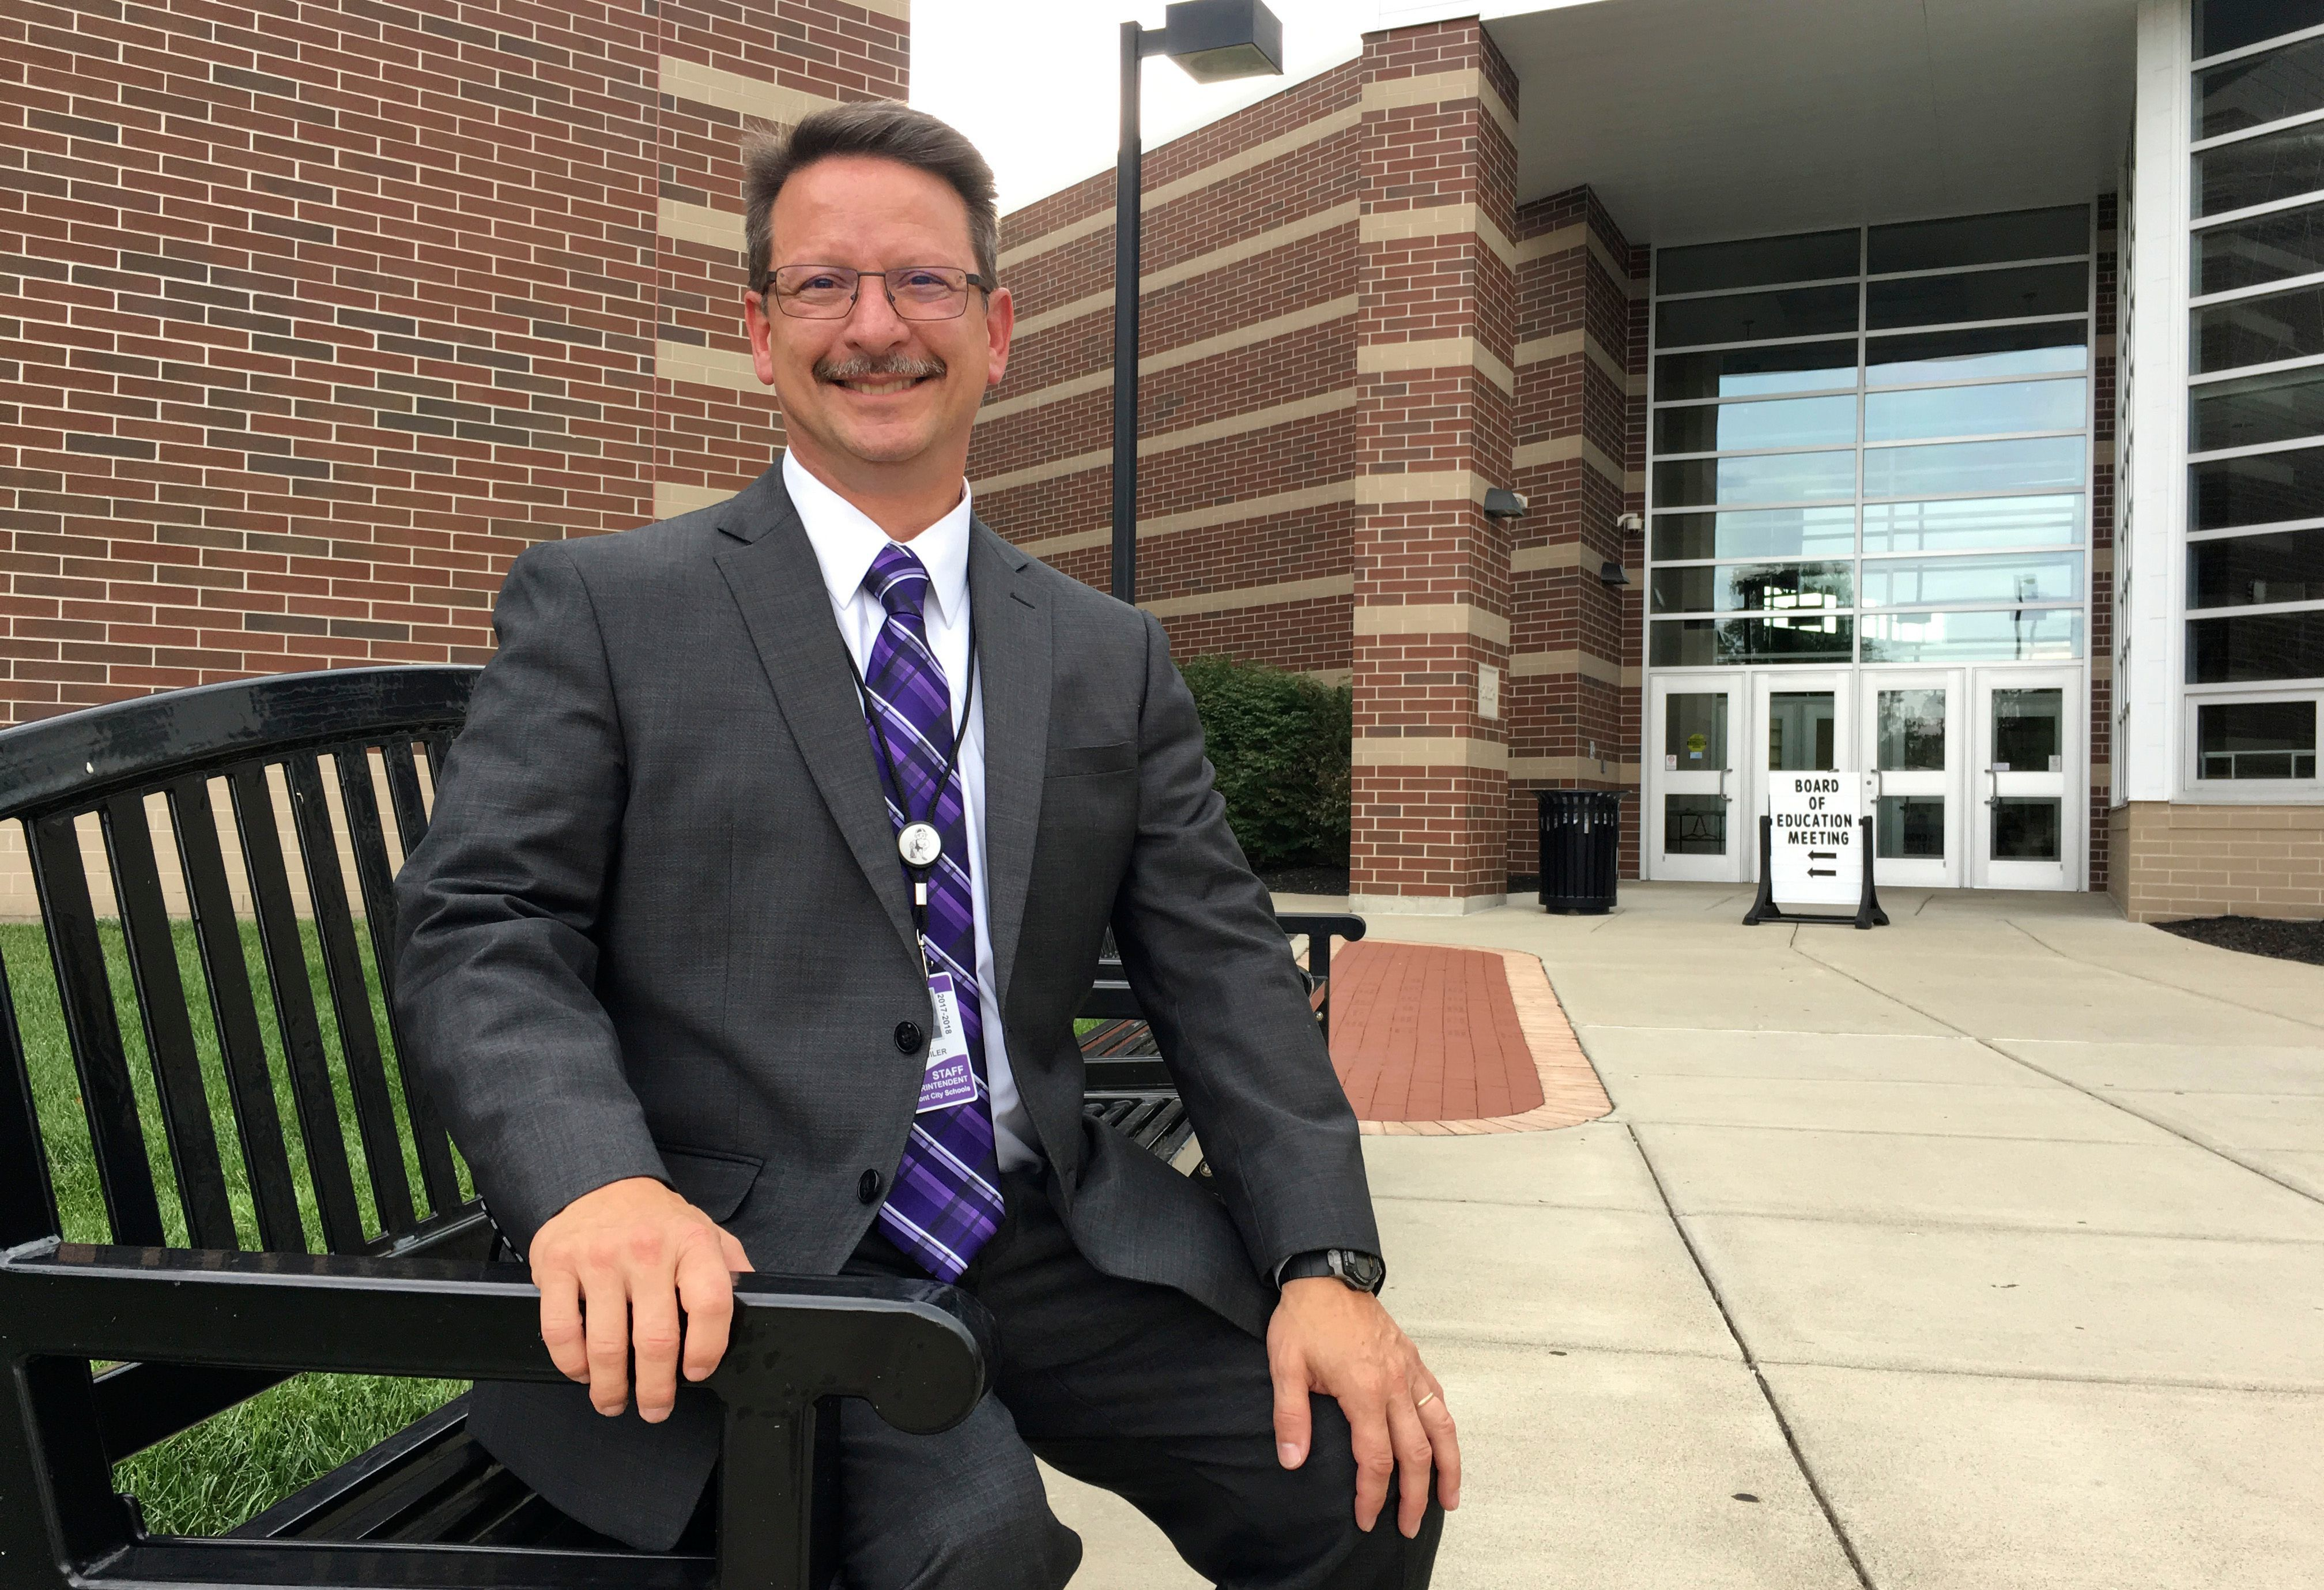 Jon Detwiler, Fremont City Schools superintendent, says the district is moving forward with its plans for four new elementary school buildings and a new Fremont Ross High School.